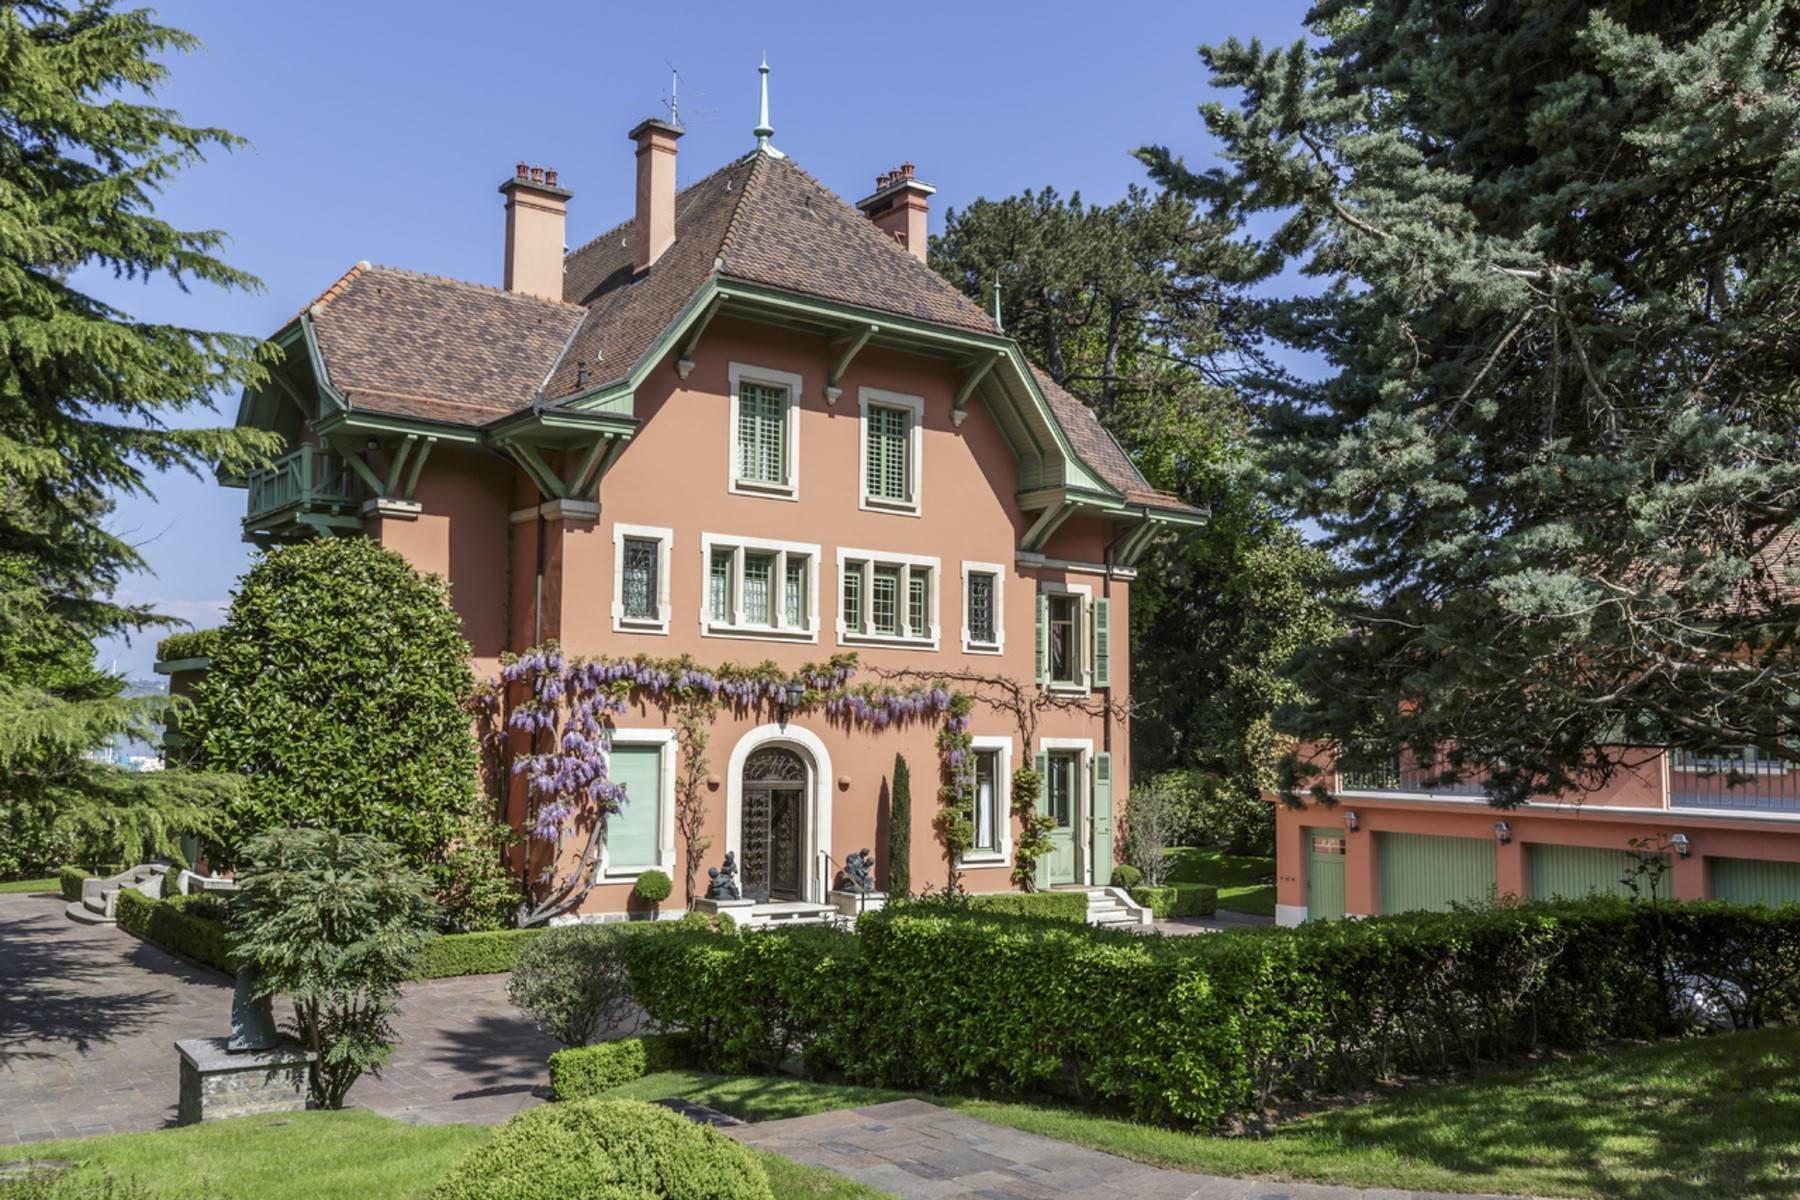 Property for Sale at Beautiful mansion on the shores of the lake ! Cologny Cologny, Geneva 1223 Switzerland